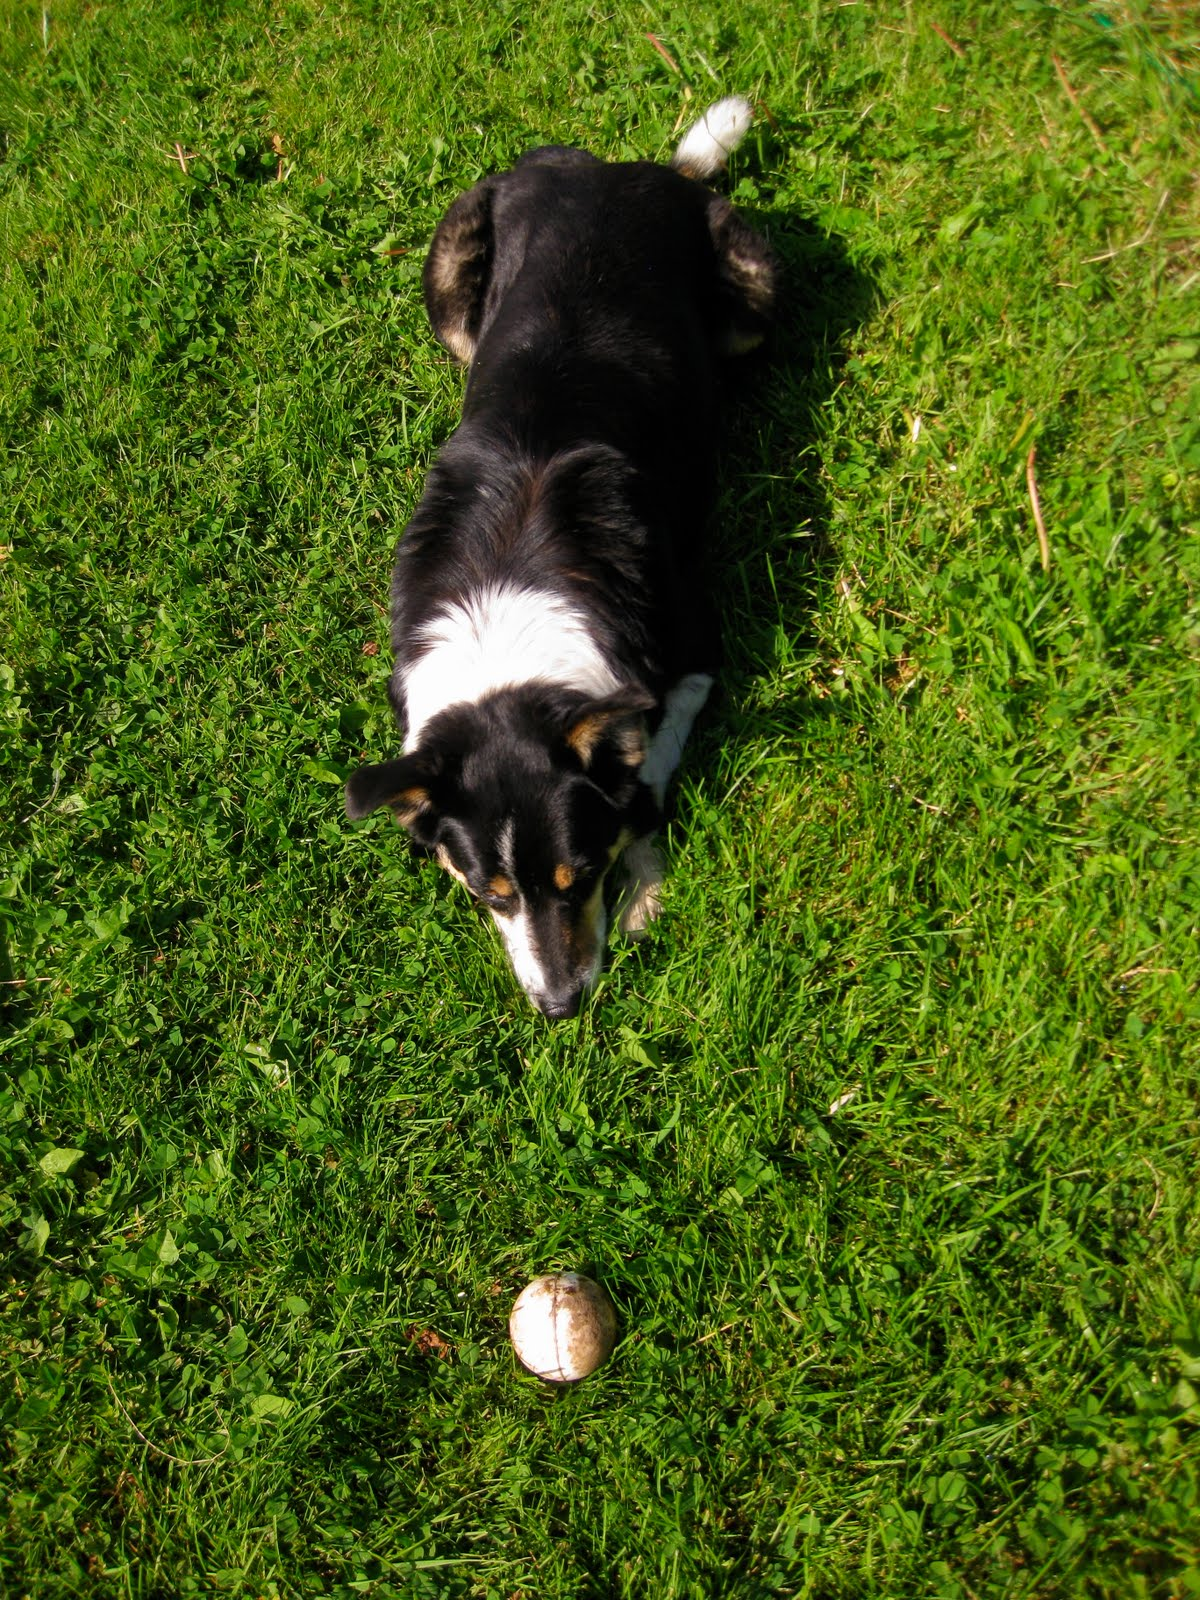 This is Angus, one of the two dogs here. He LOVES to play fetch, and I've seen this sight very often already.